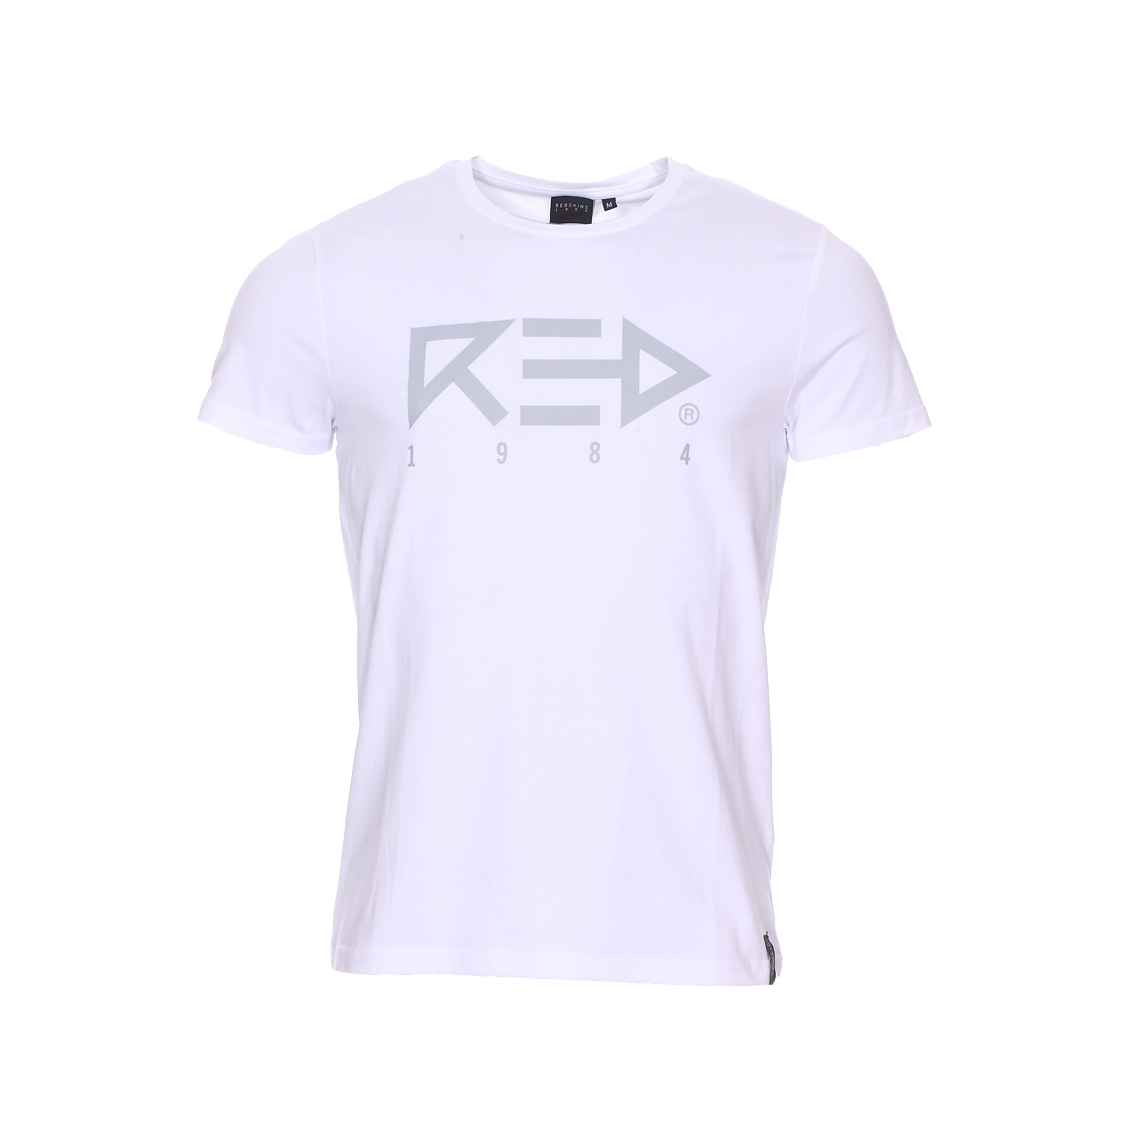 Tee-shirt col rond  arrow en coton stretch blanc floqué